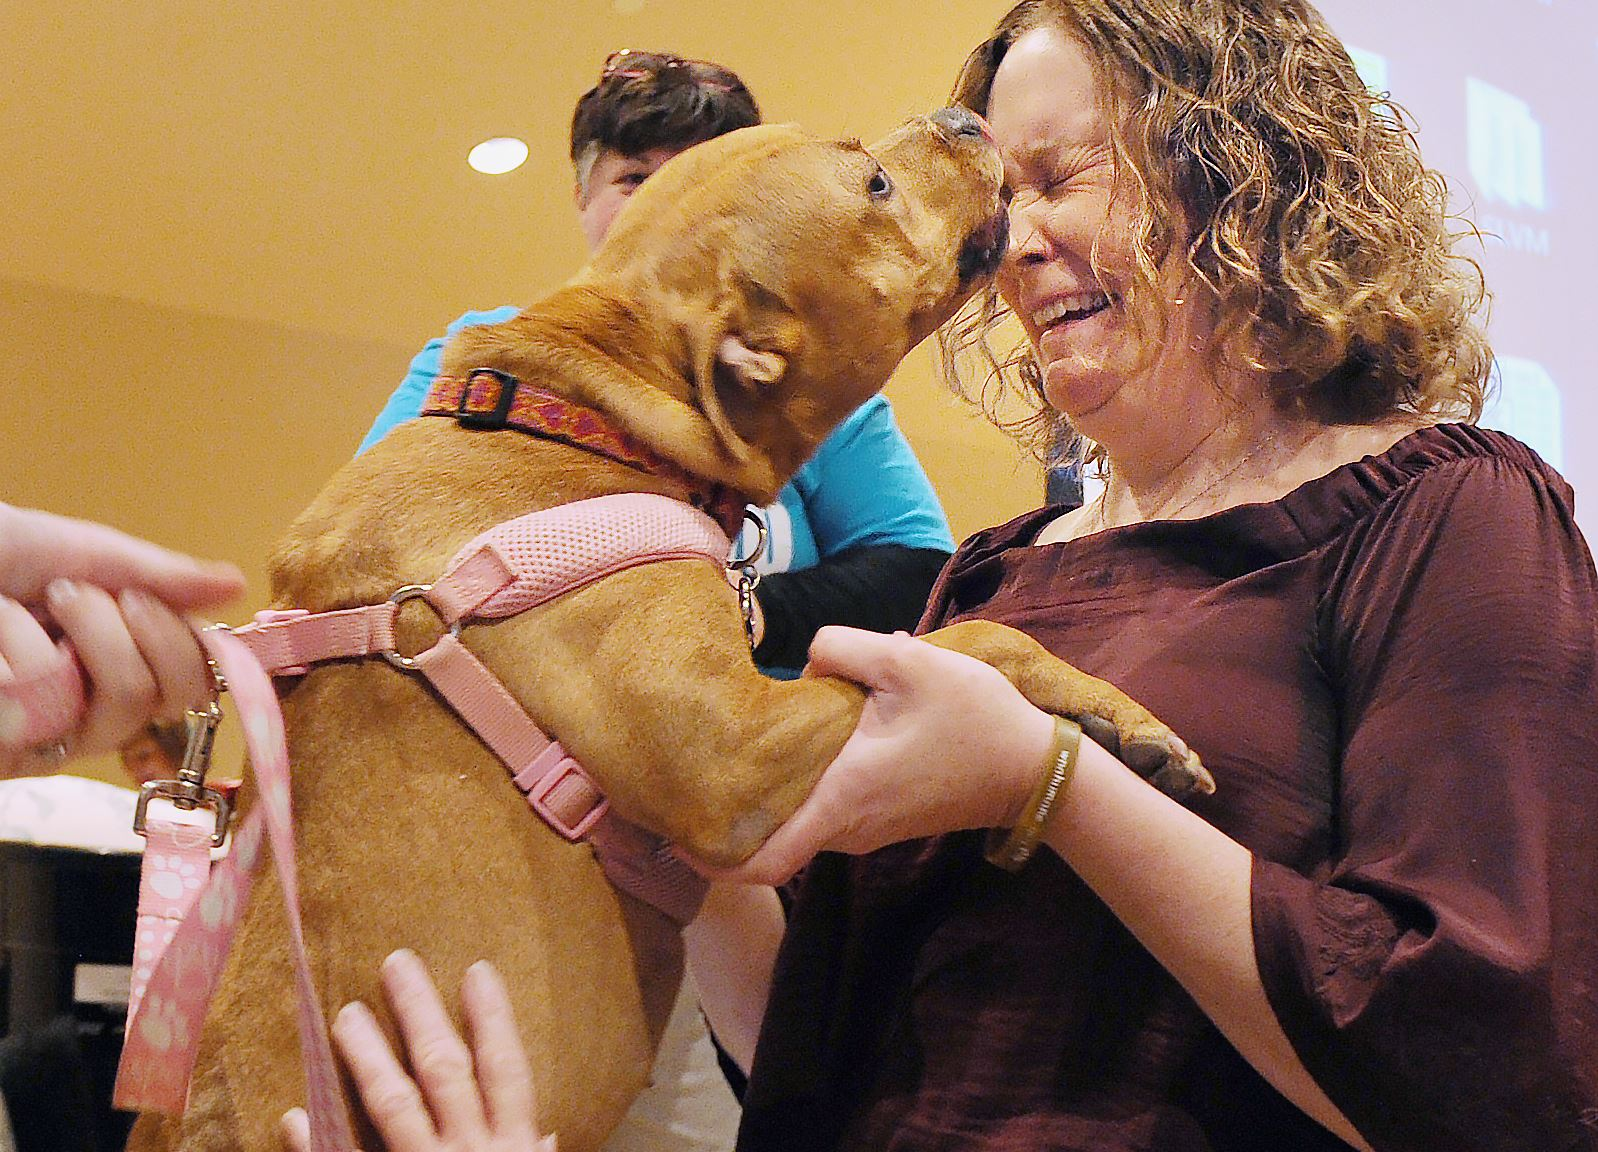 20170304rldBiscuitBingo02 Officer Christine Luffey reacts as she's greeted with full-face licks by Effie during the bingo event. Effie, the abused pit bull who was found and then adopted by Officer Luffey, visited the event.